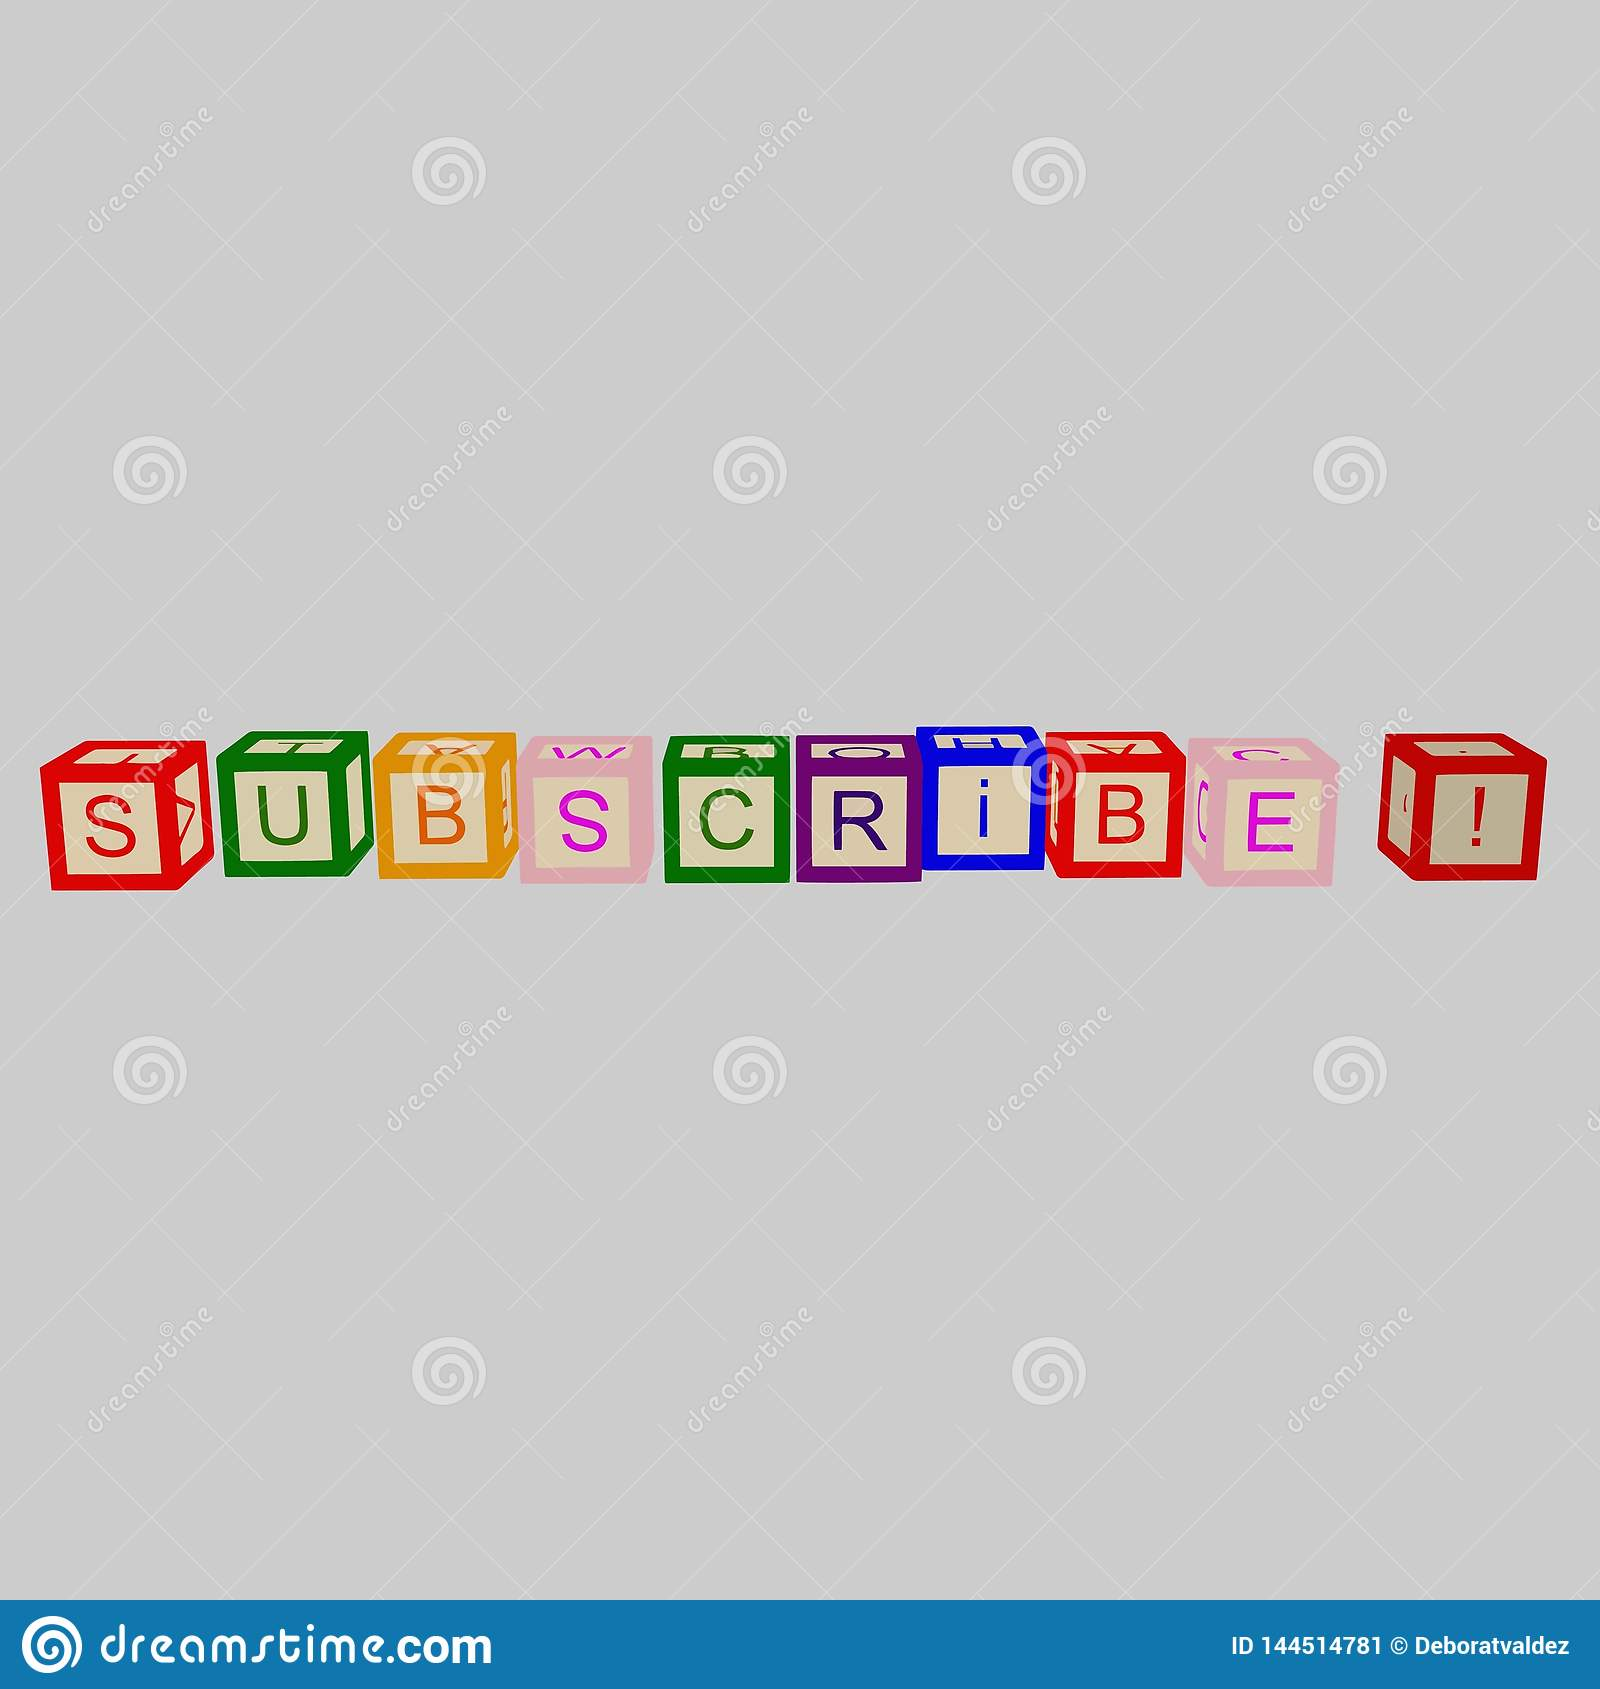 Kids color cubes with letters. Subscribe word. Vector.